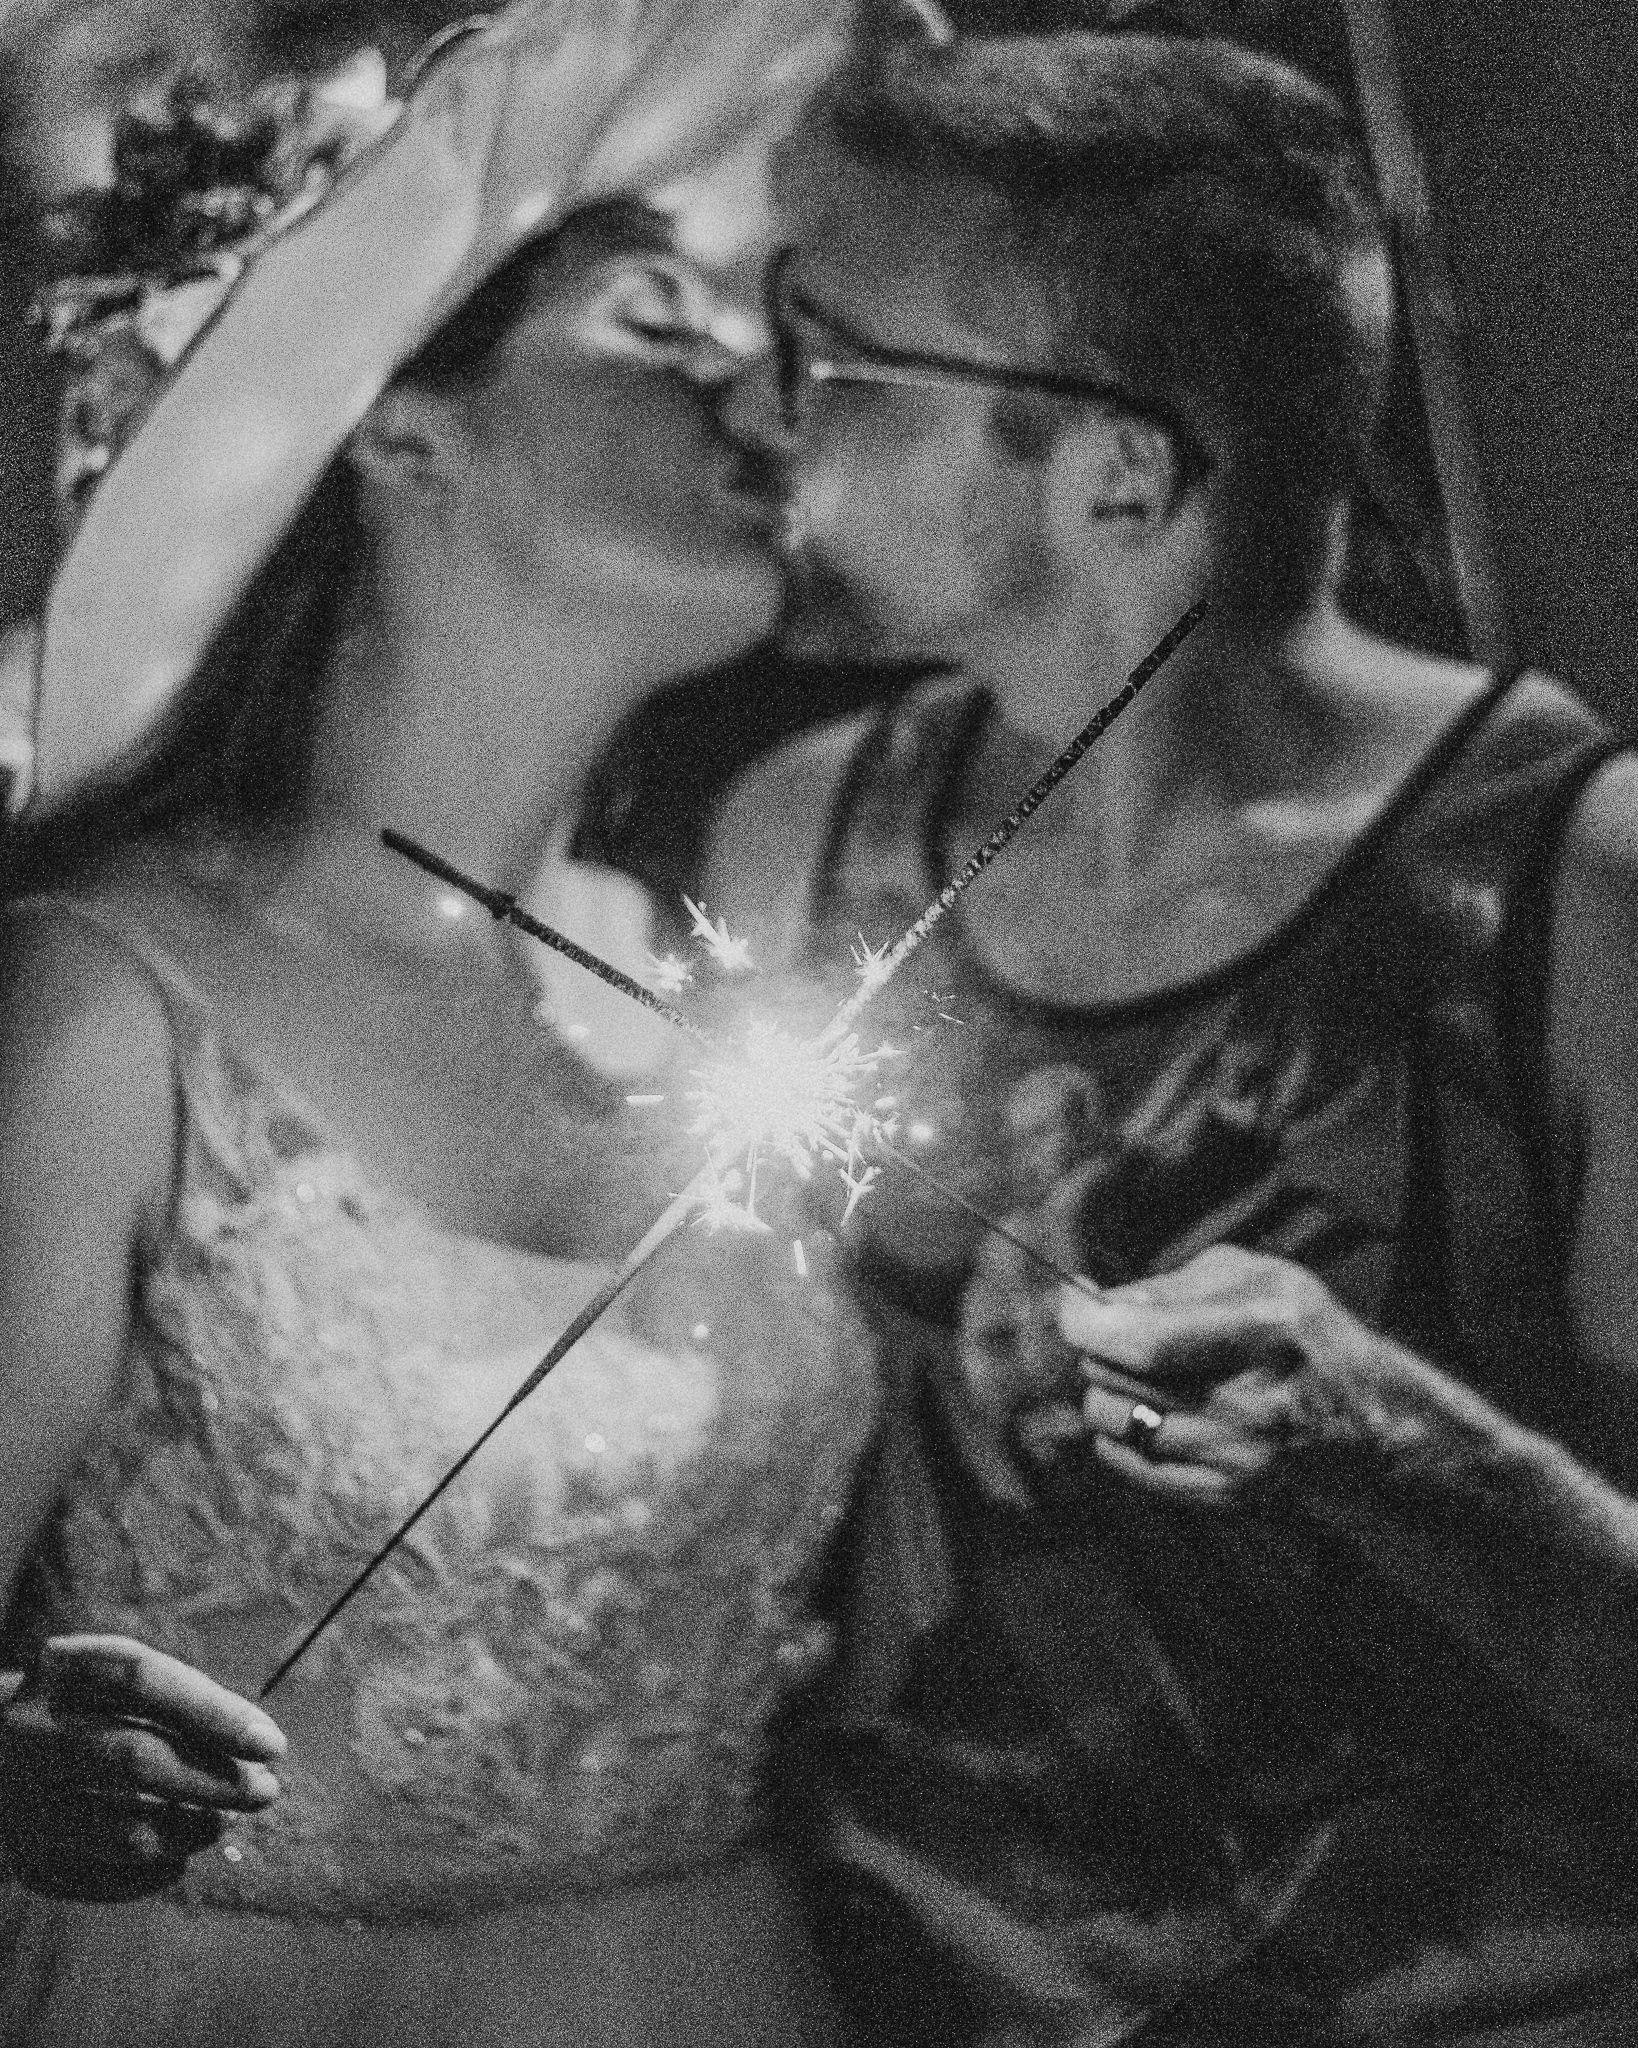 bride and groom kiss as they touch light sparklers together